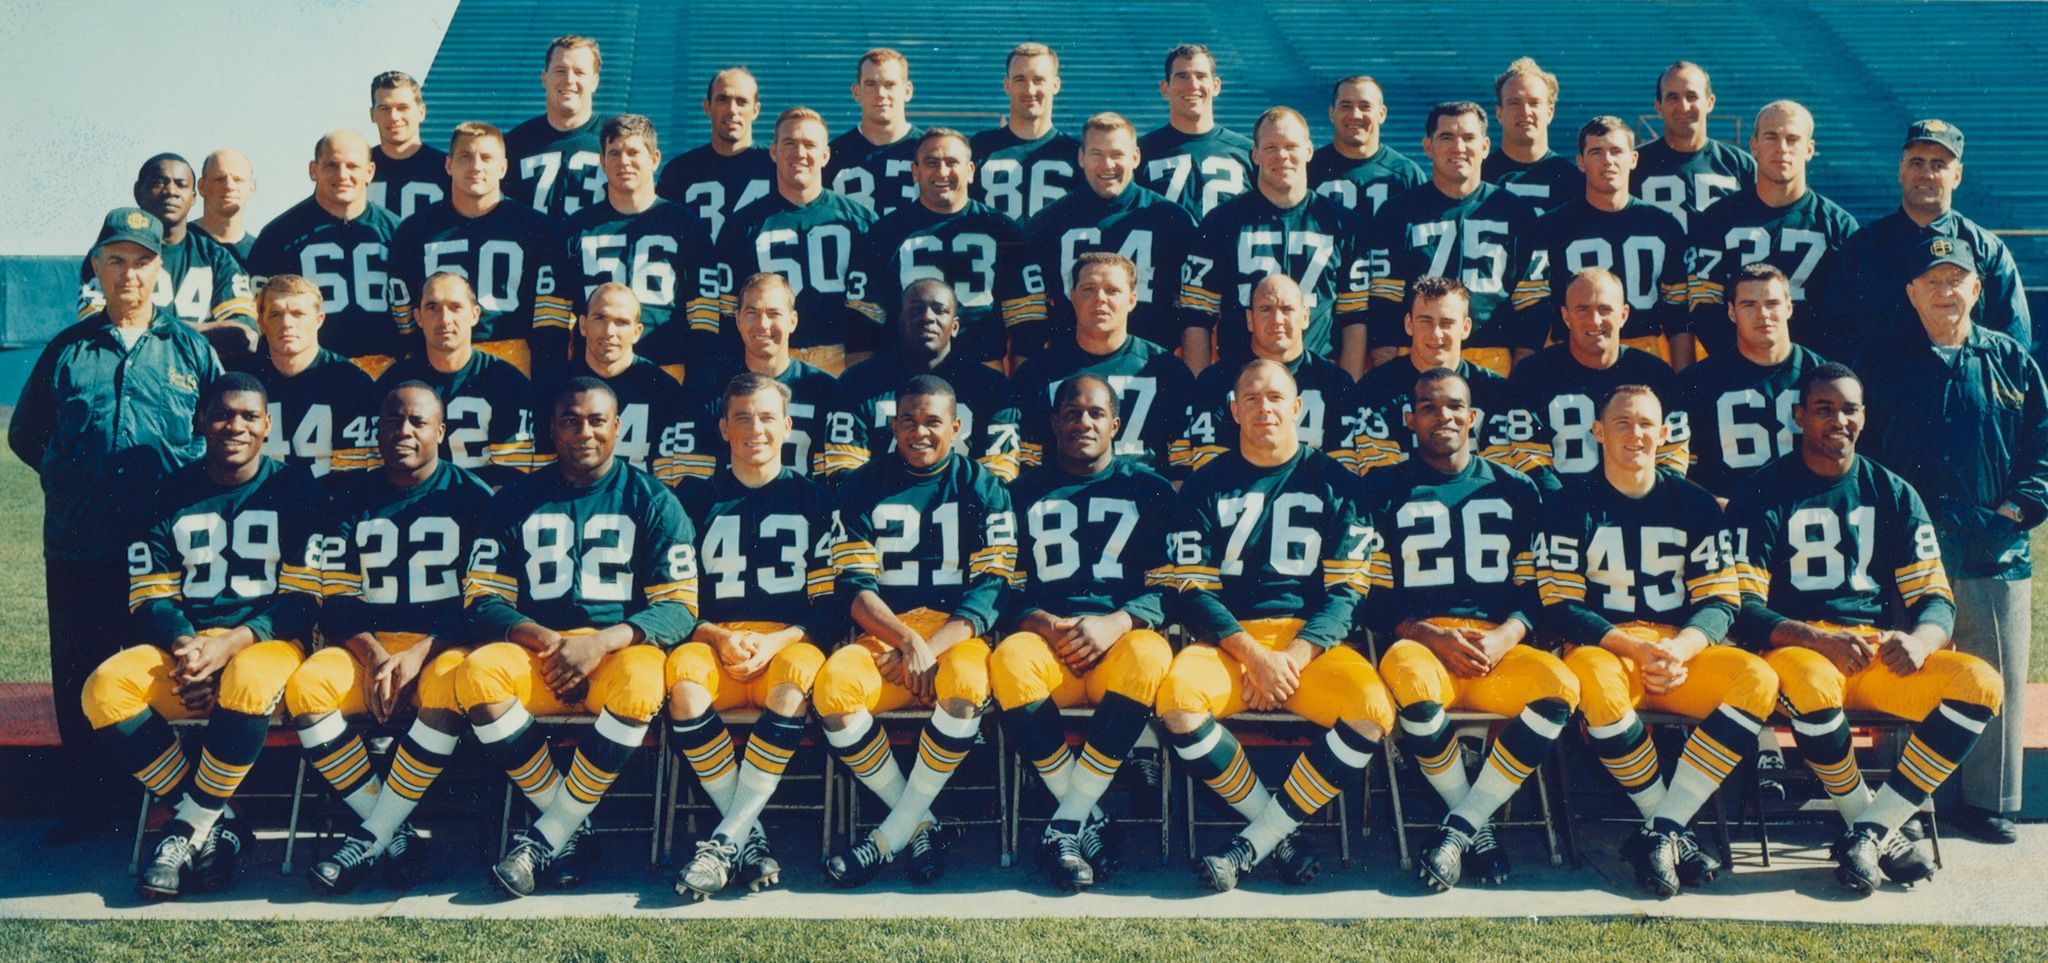 60s Packers Struggle Against Their Final Foe Green Bay Packers Green Bay Packers Players Packers Super Bowl